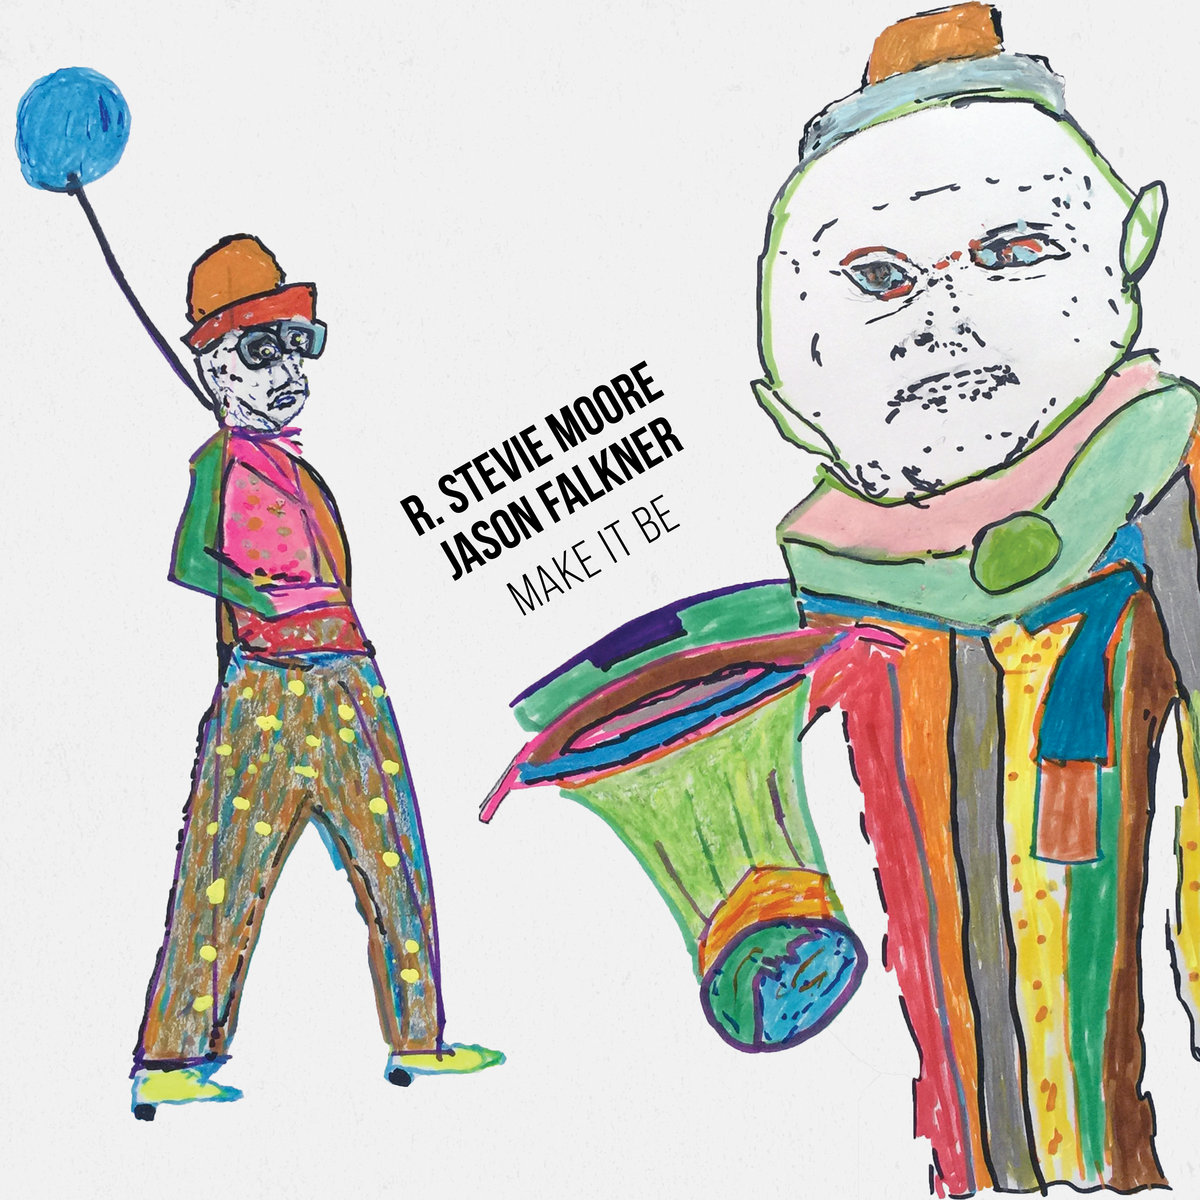 r. stevie moore and jason falkner make it be